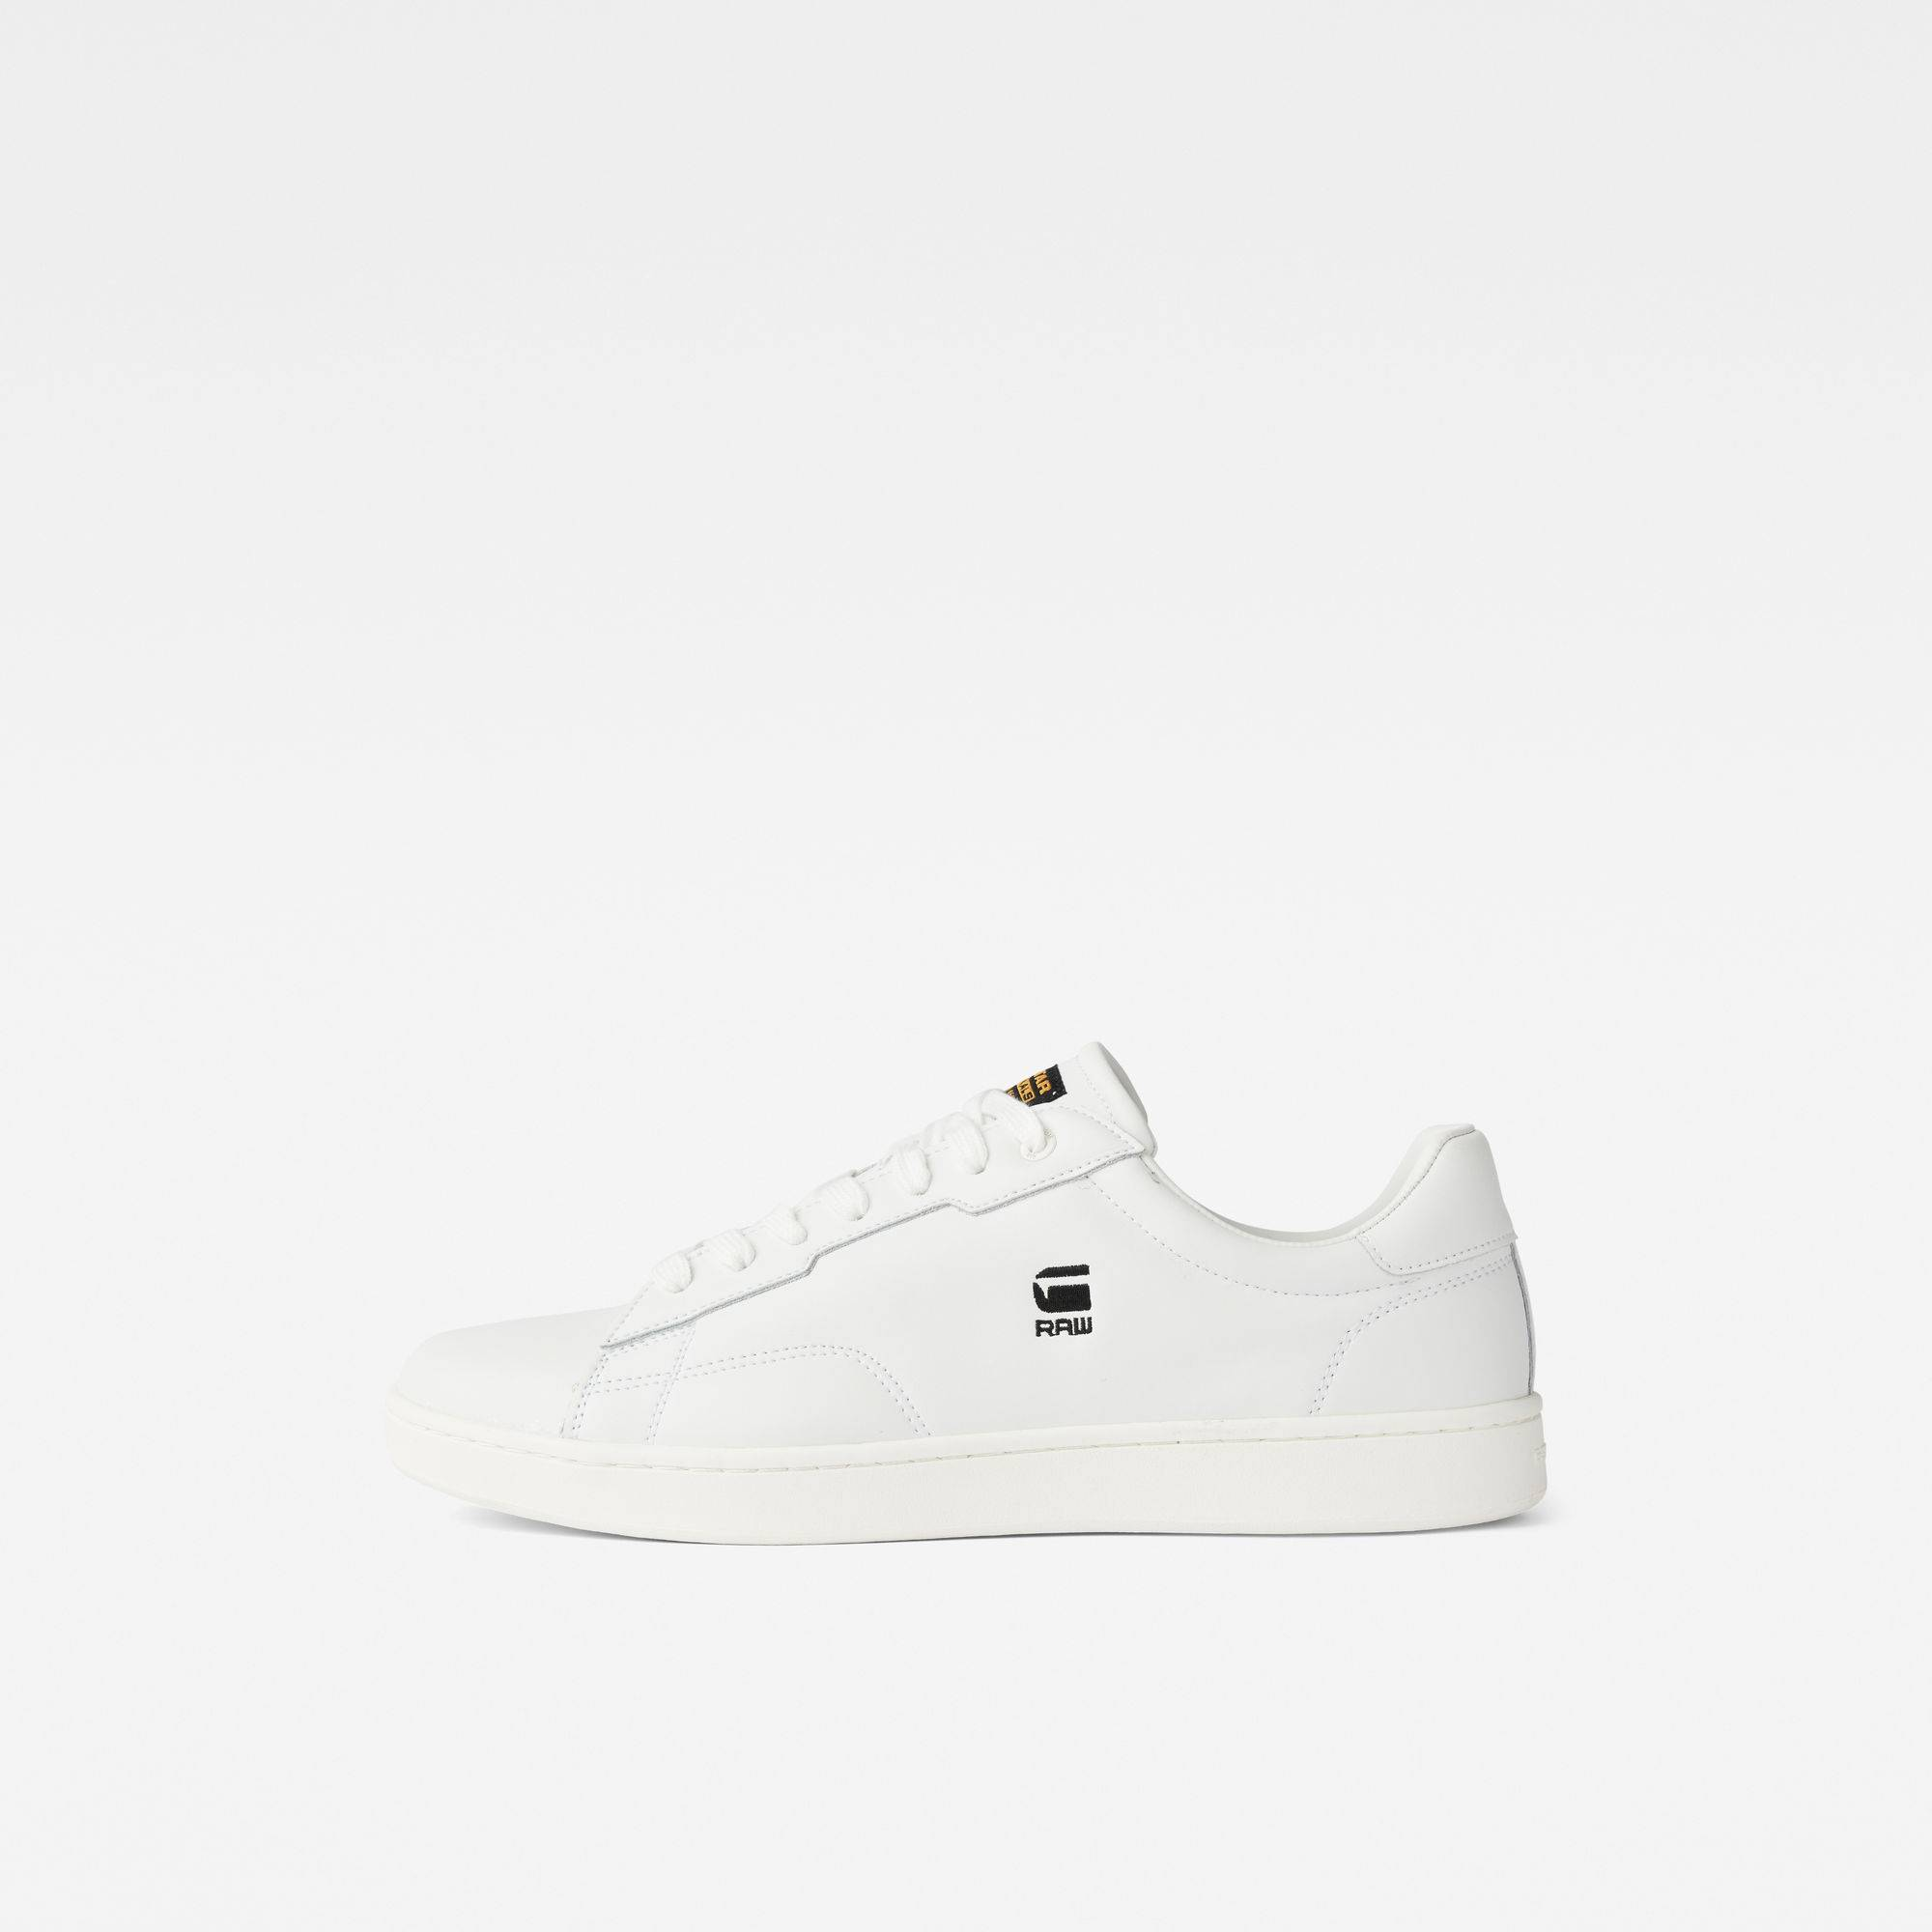 G-Star RAW Cadet Leather Sneakers White Men